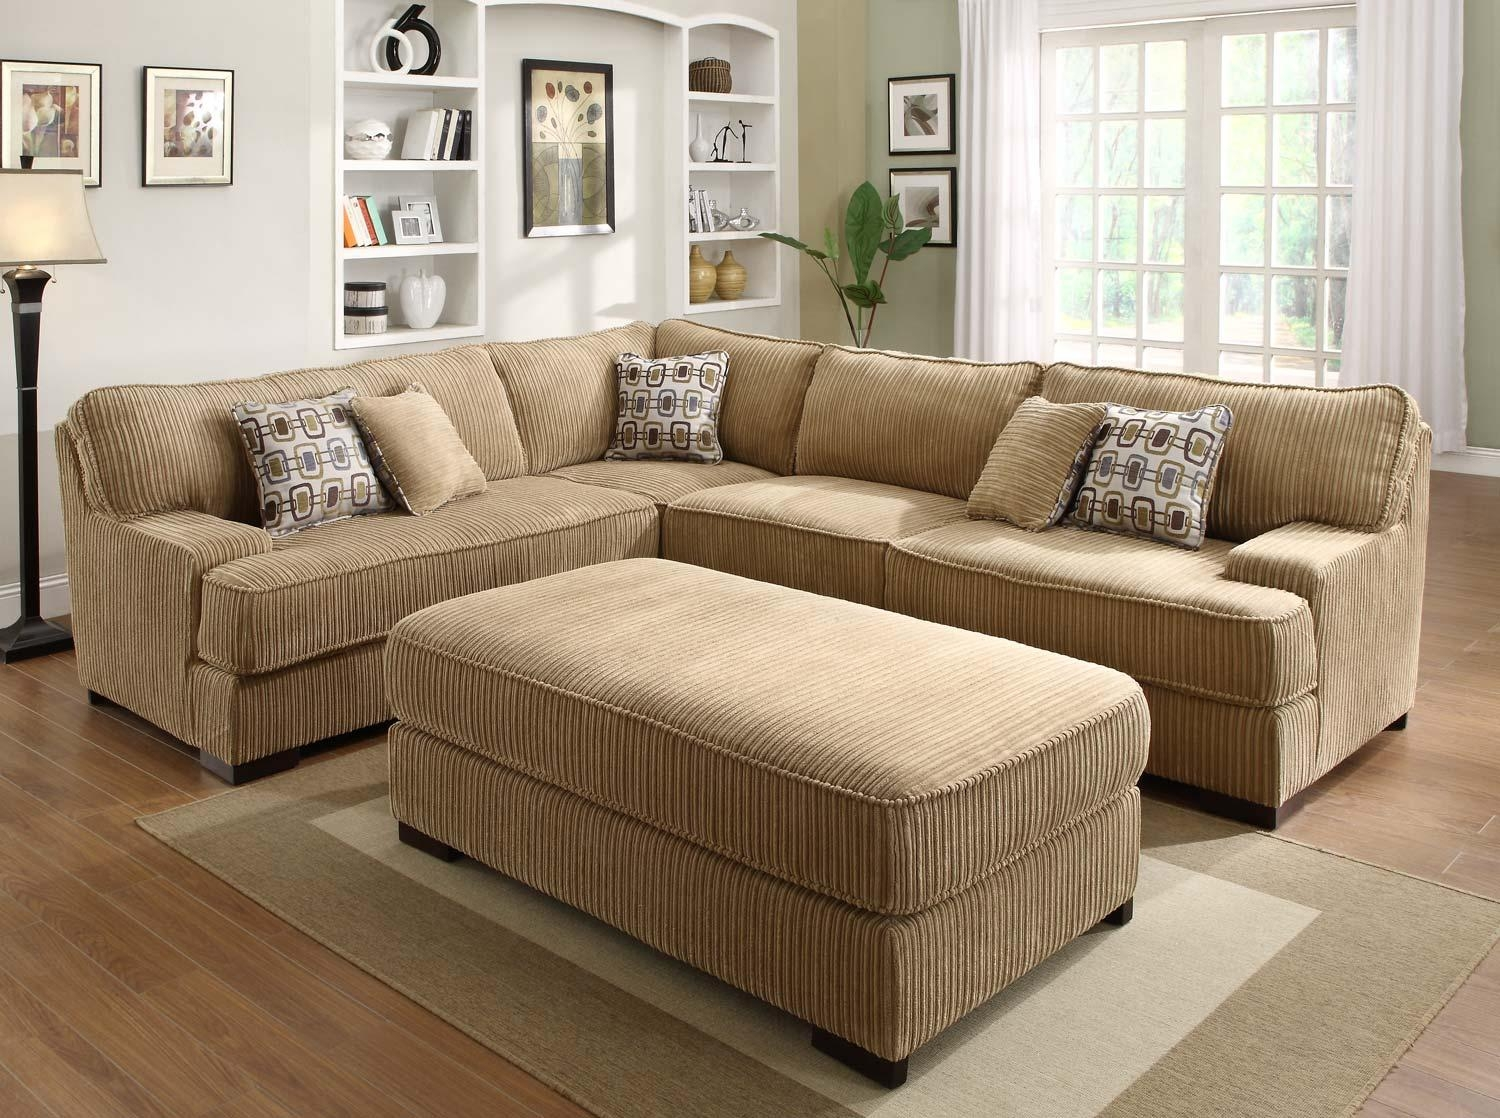 Sofas Center : Nice Broyhill Sleeper Sofa Top Furniture Home Inside Broyhill Sectional Sleeper Sofas (Image 18 of 20)